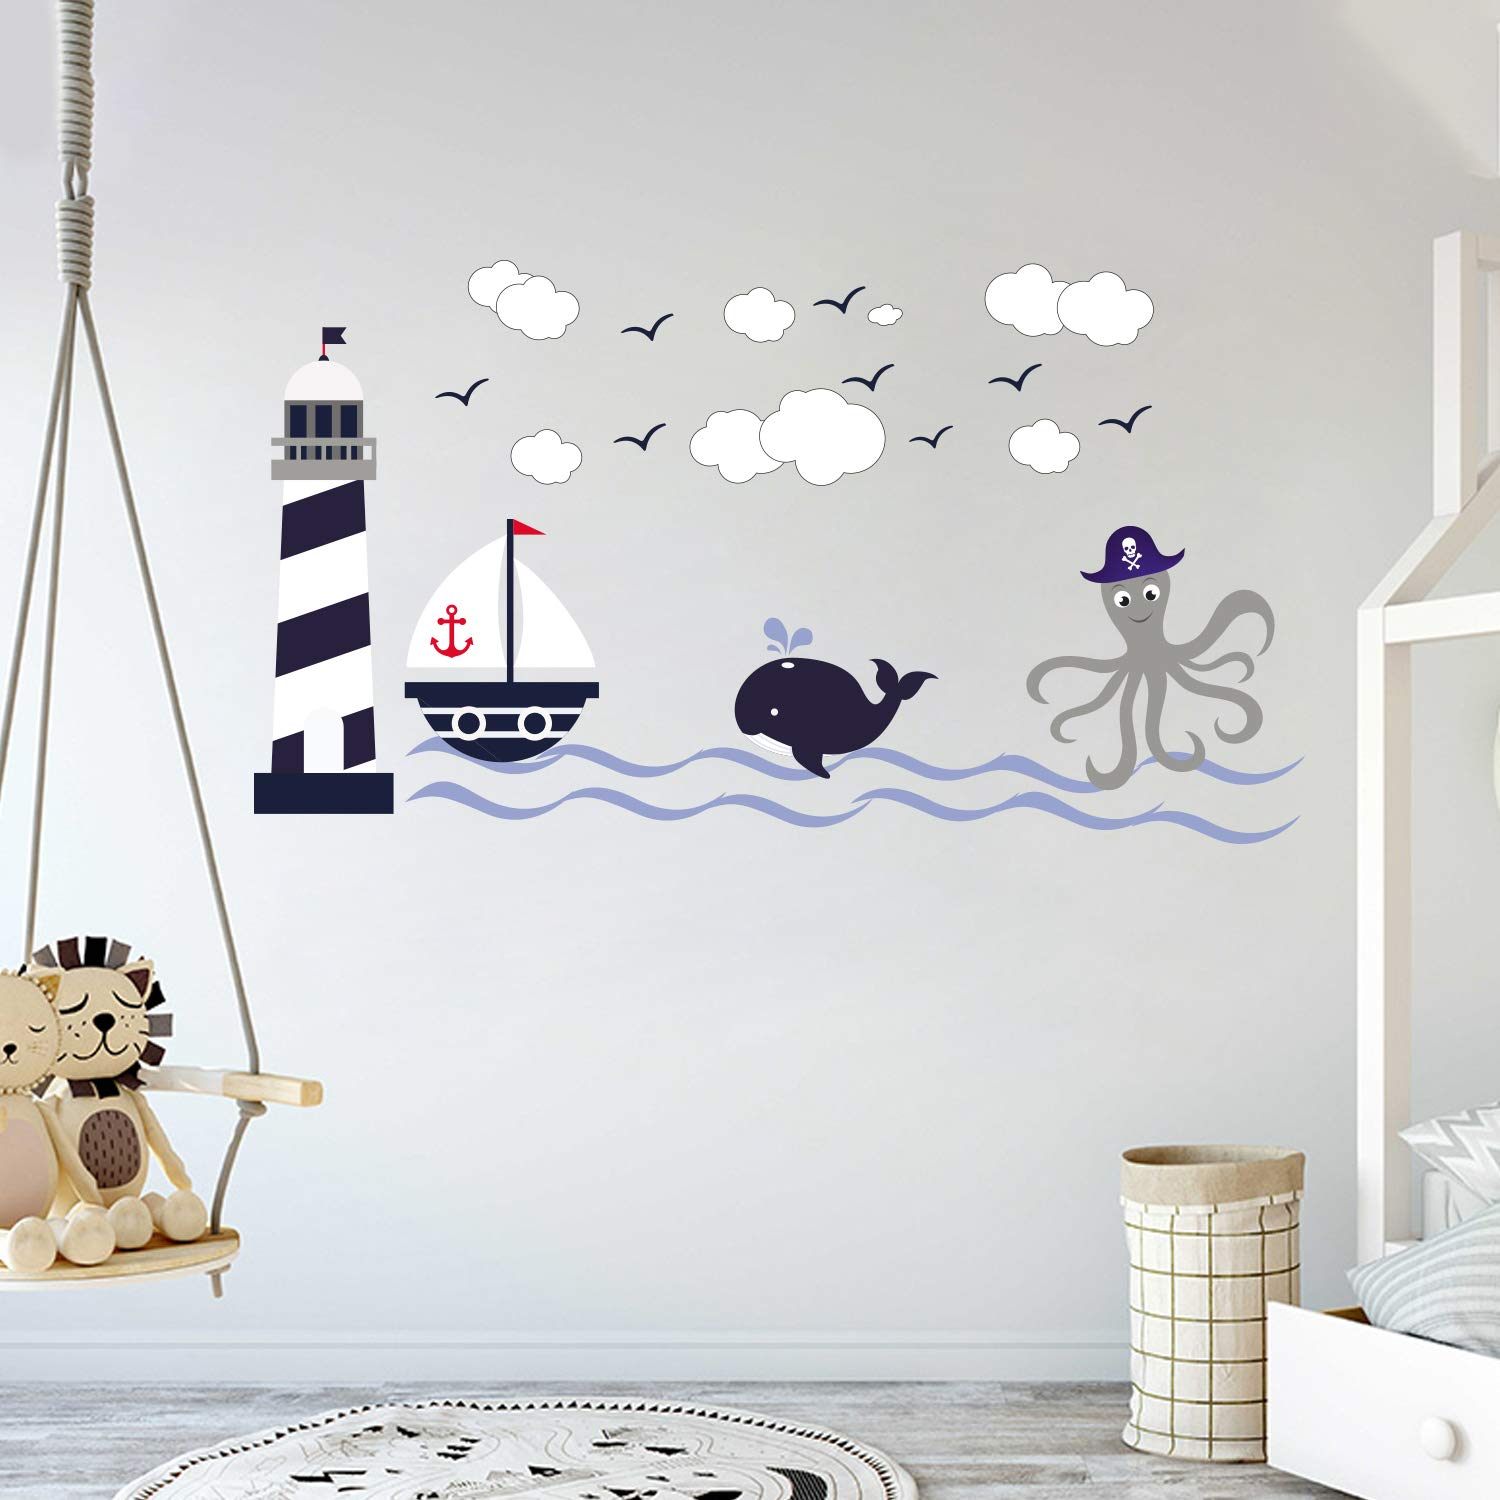 Nautical Theme - The Wonderful Sea World Sailor Children's Room Kids Room Baby Nursery Playroom Wall Decal Mural Vinyl Transfer Wall Art (AM) (Wide 58'' x 32'' Height) by cryptonite